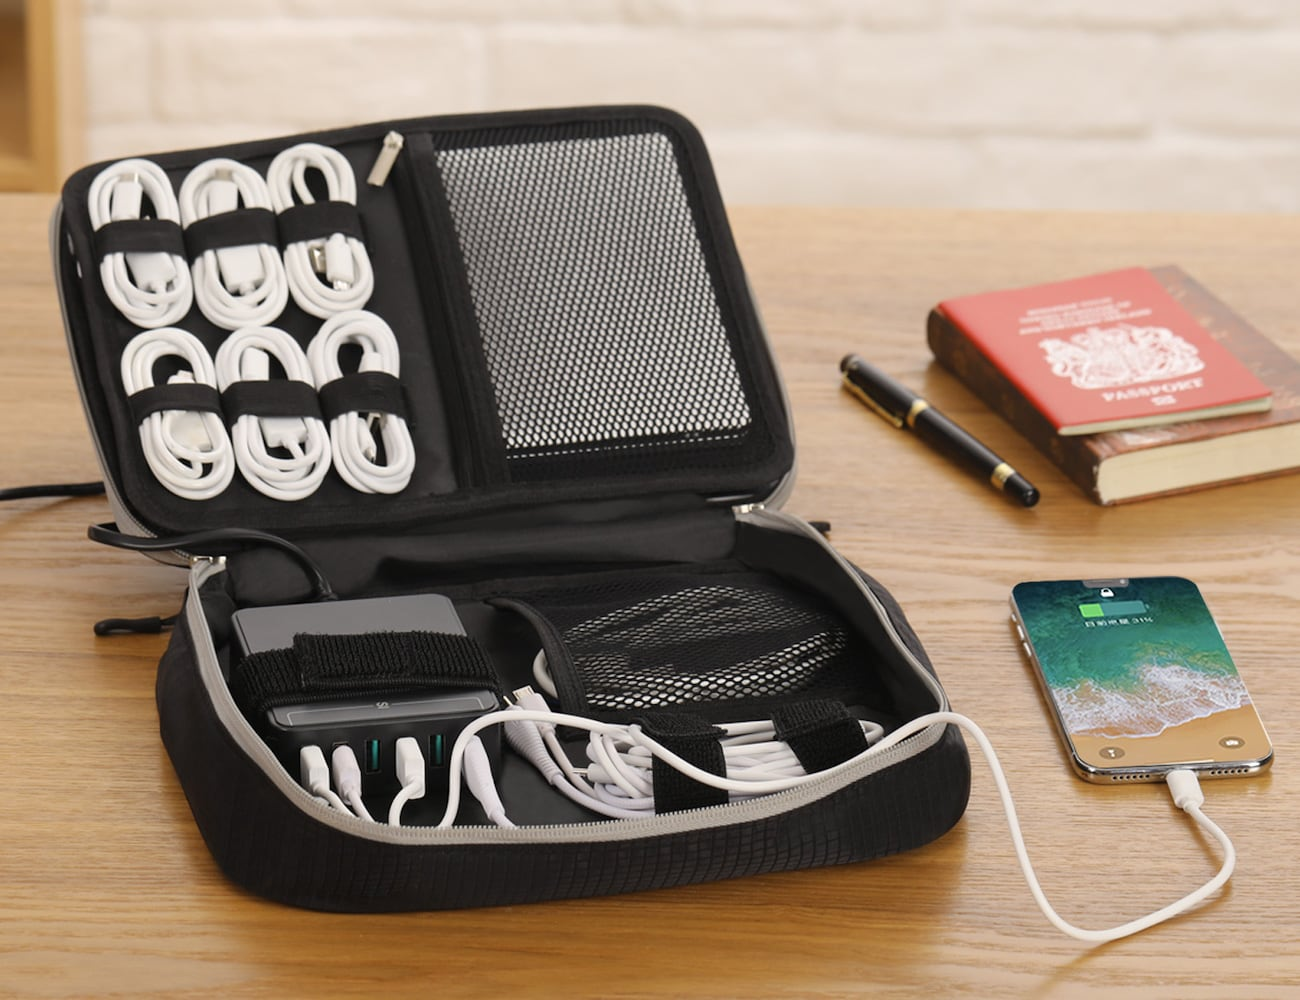 Jelly Comb 3-Layer Electronics Organizer Pro Travel Tech Bag sorts all your cords and devices